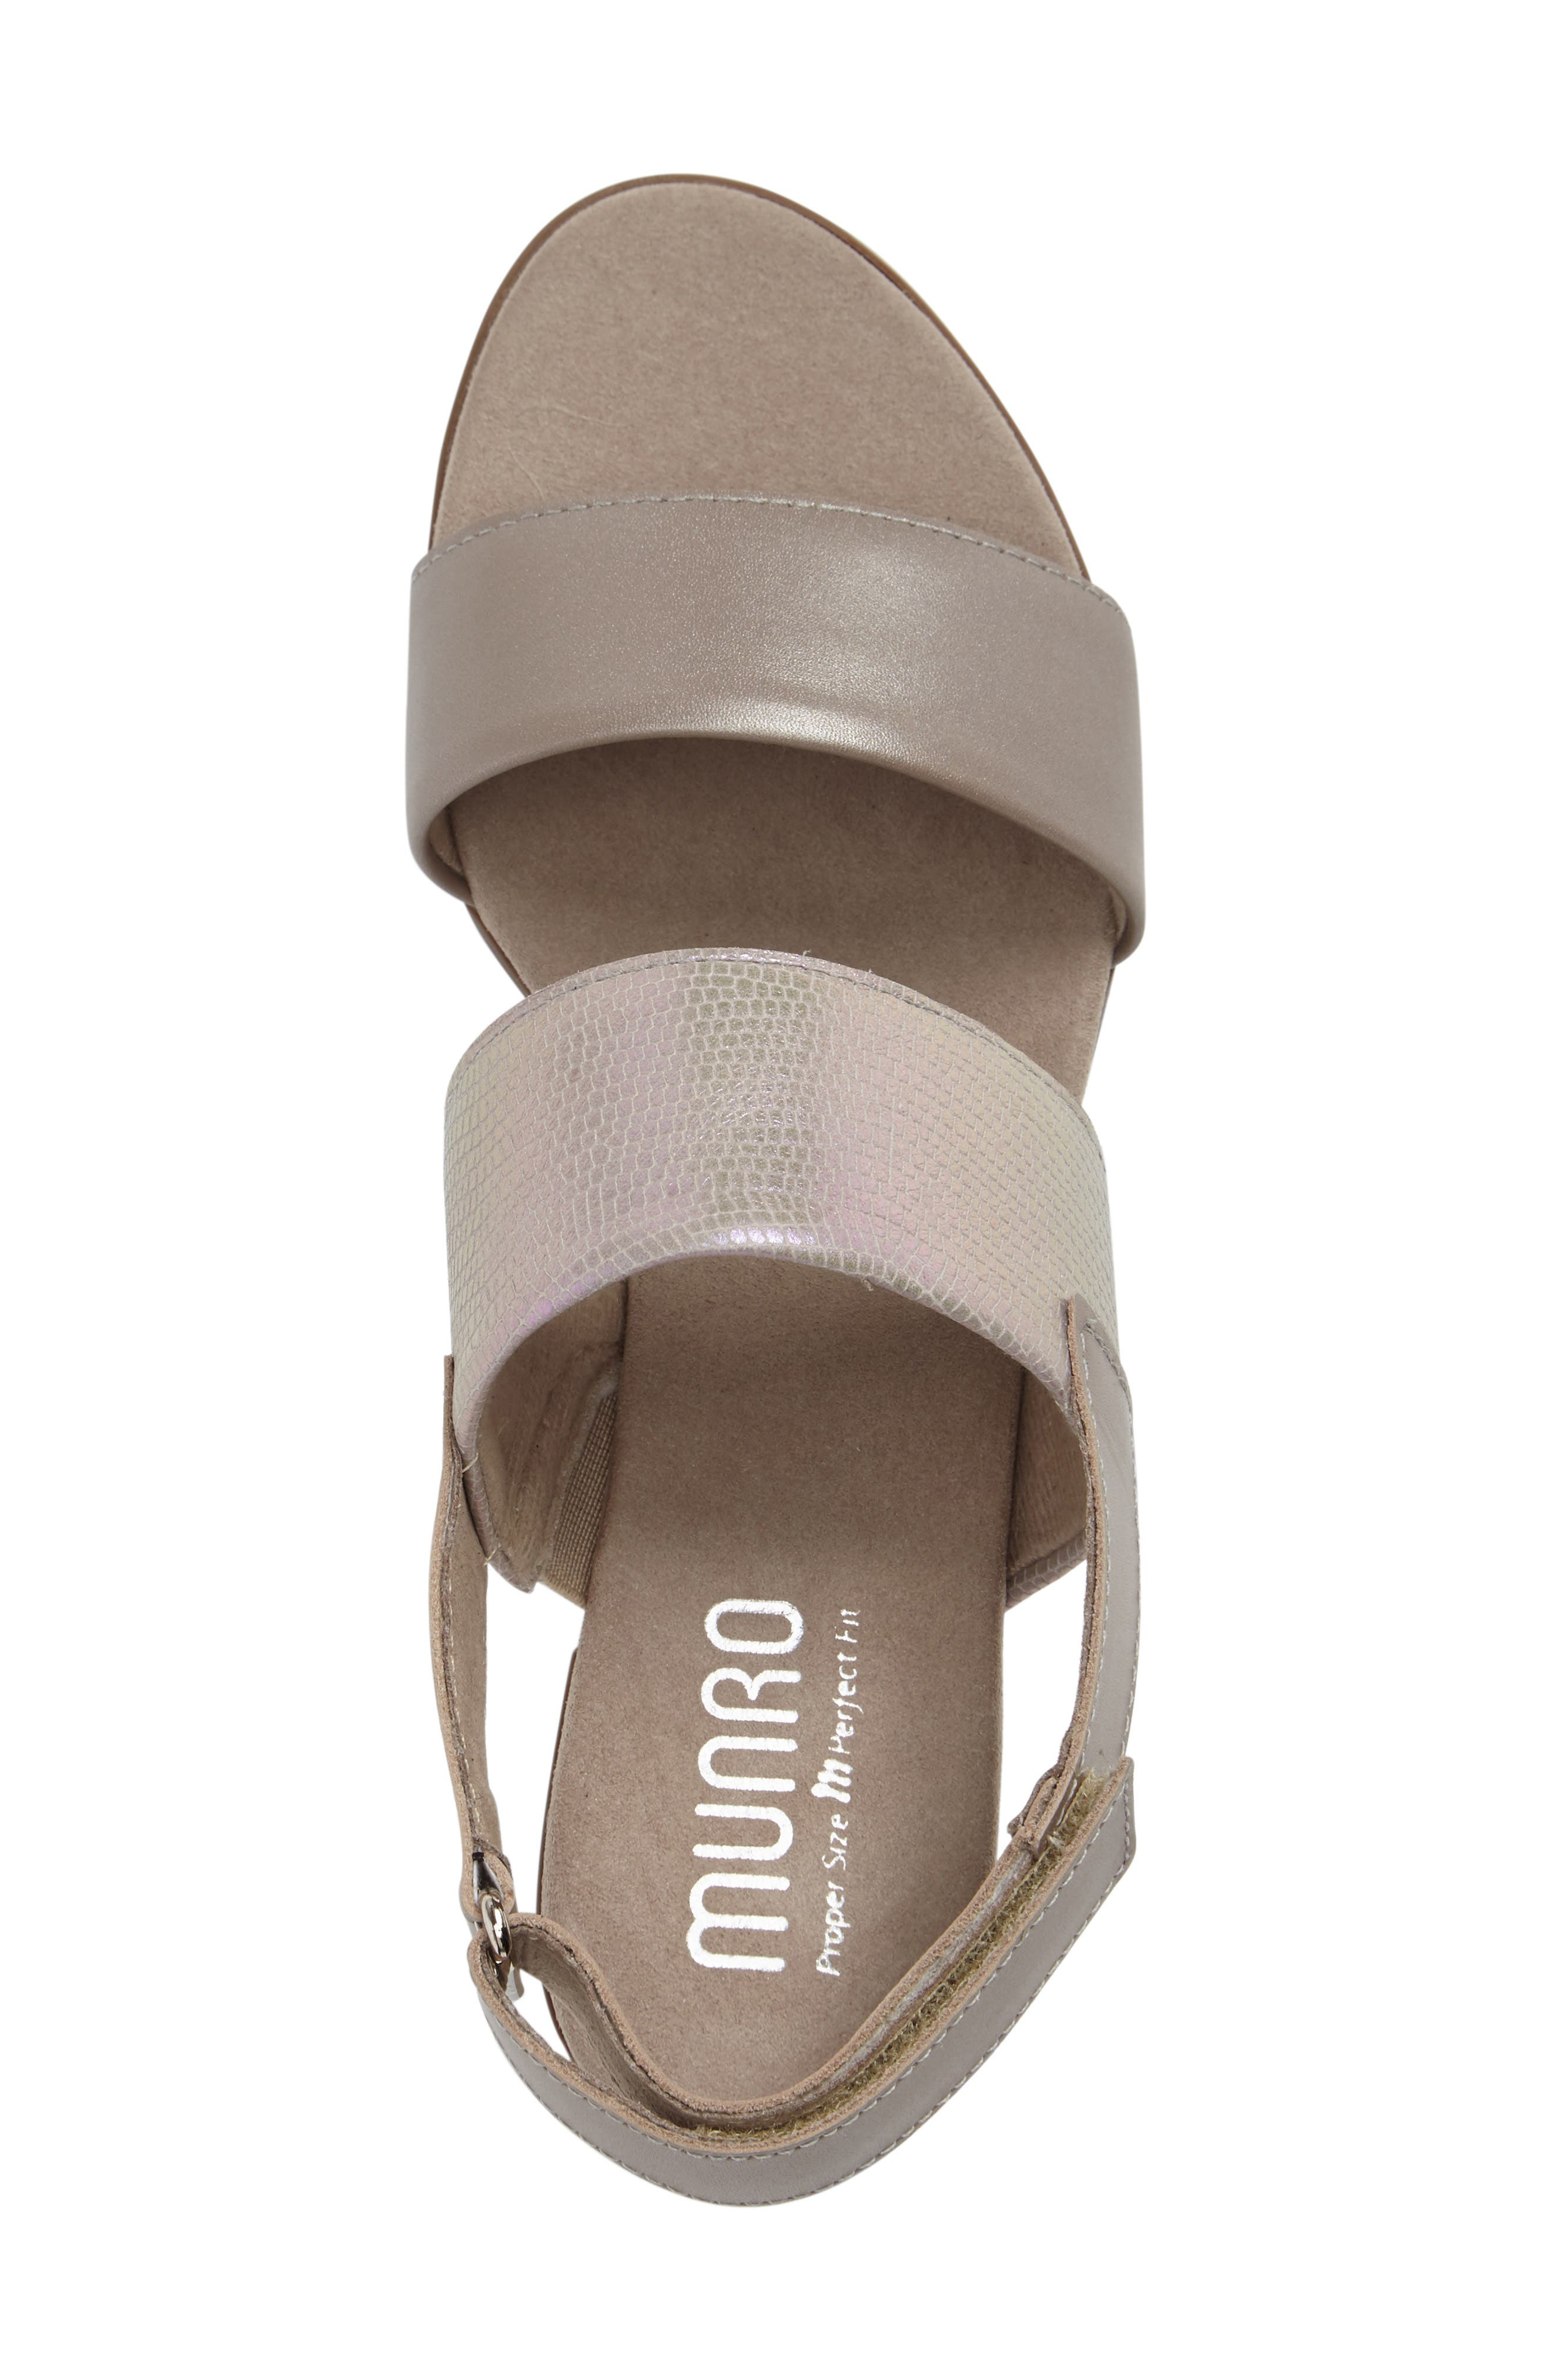 Kristal Sandal,                             Alternate thumbnail 3, color,                             Pearl Metallic Lizard Leather